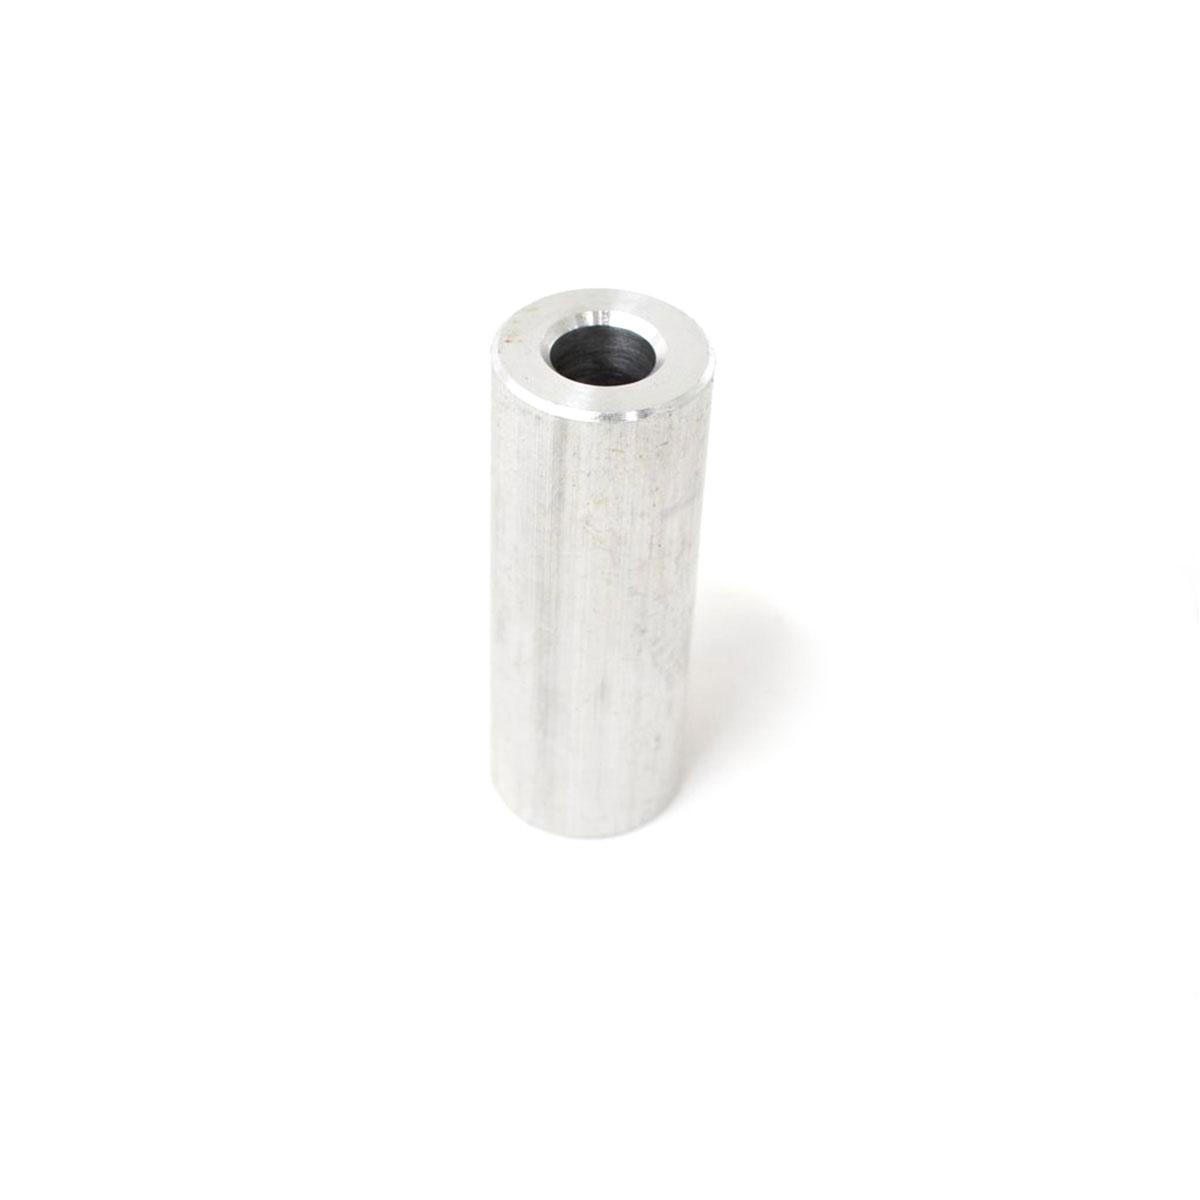 Scag Axle Spacer 43857